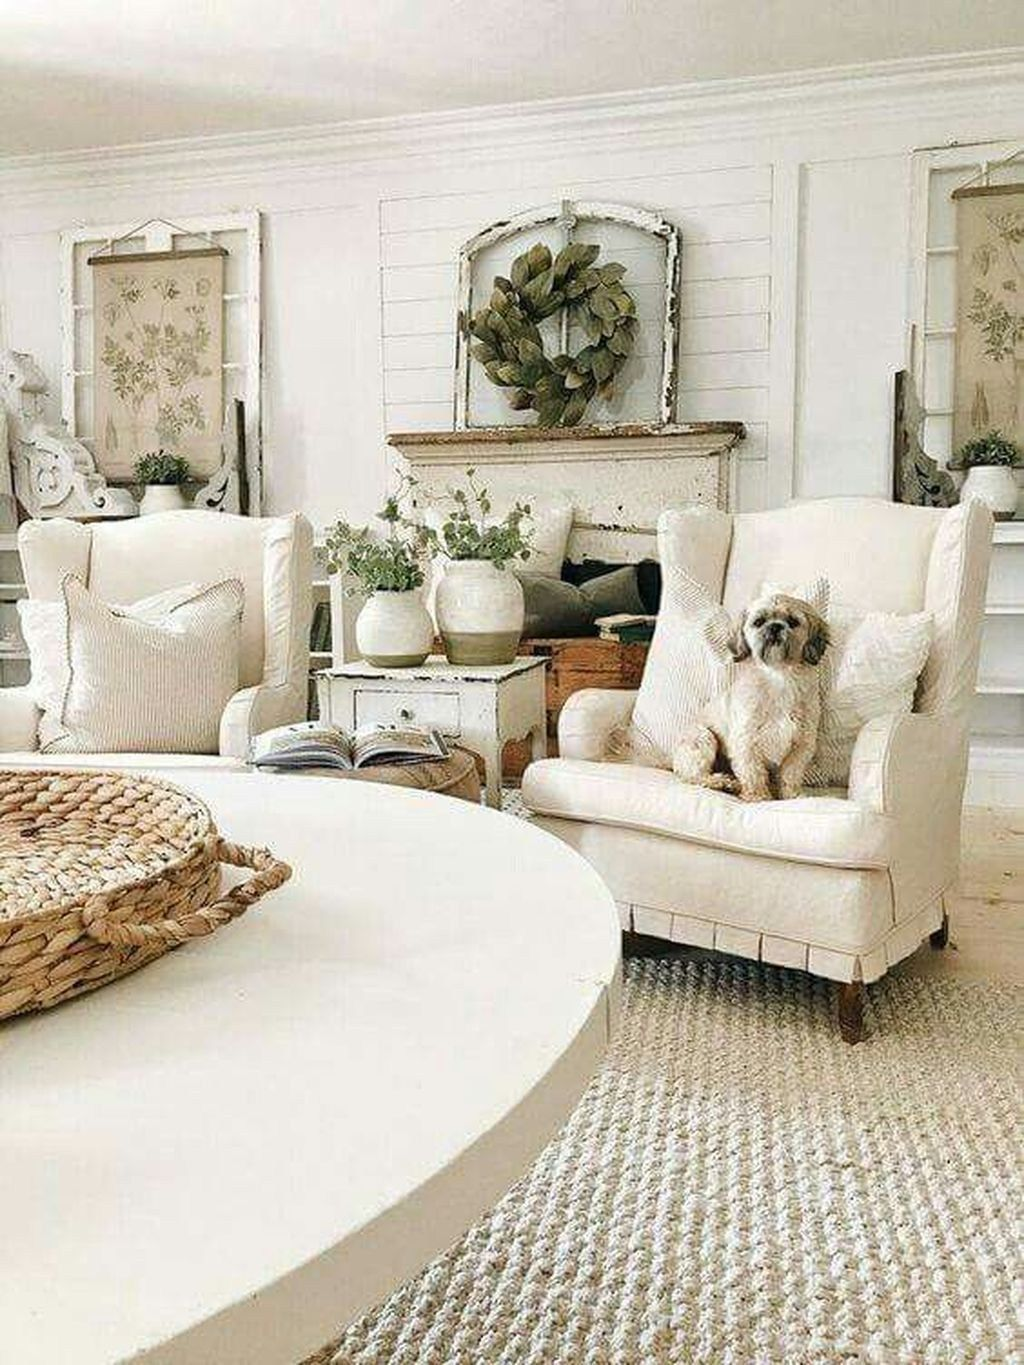 My modern farmhouse living room. See this Instagram photo ...